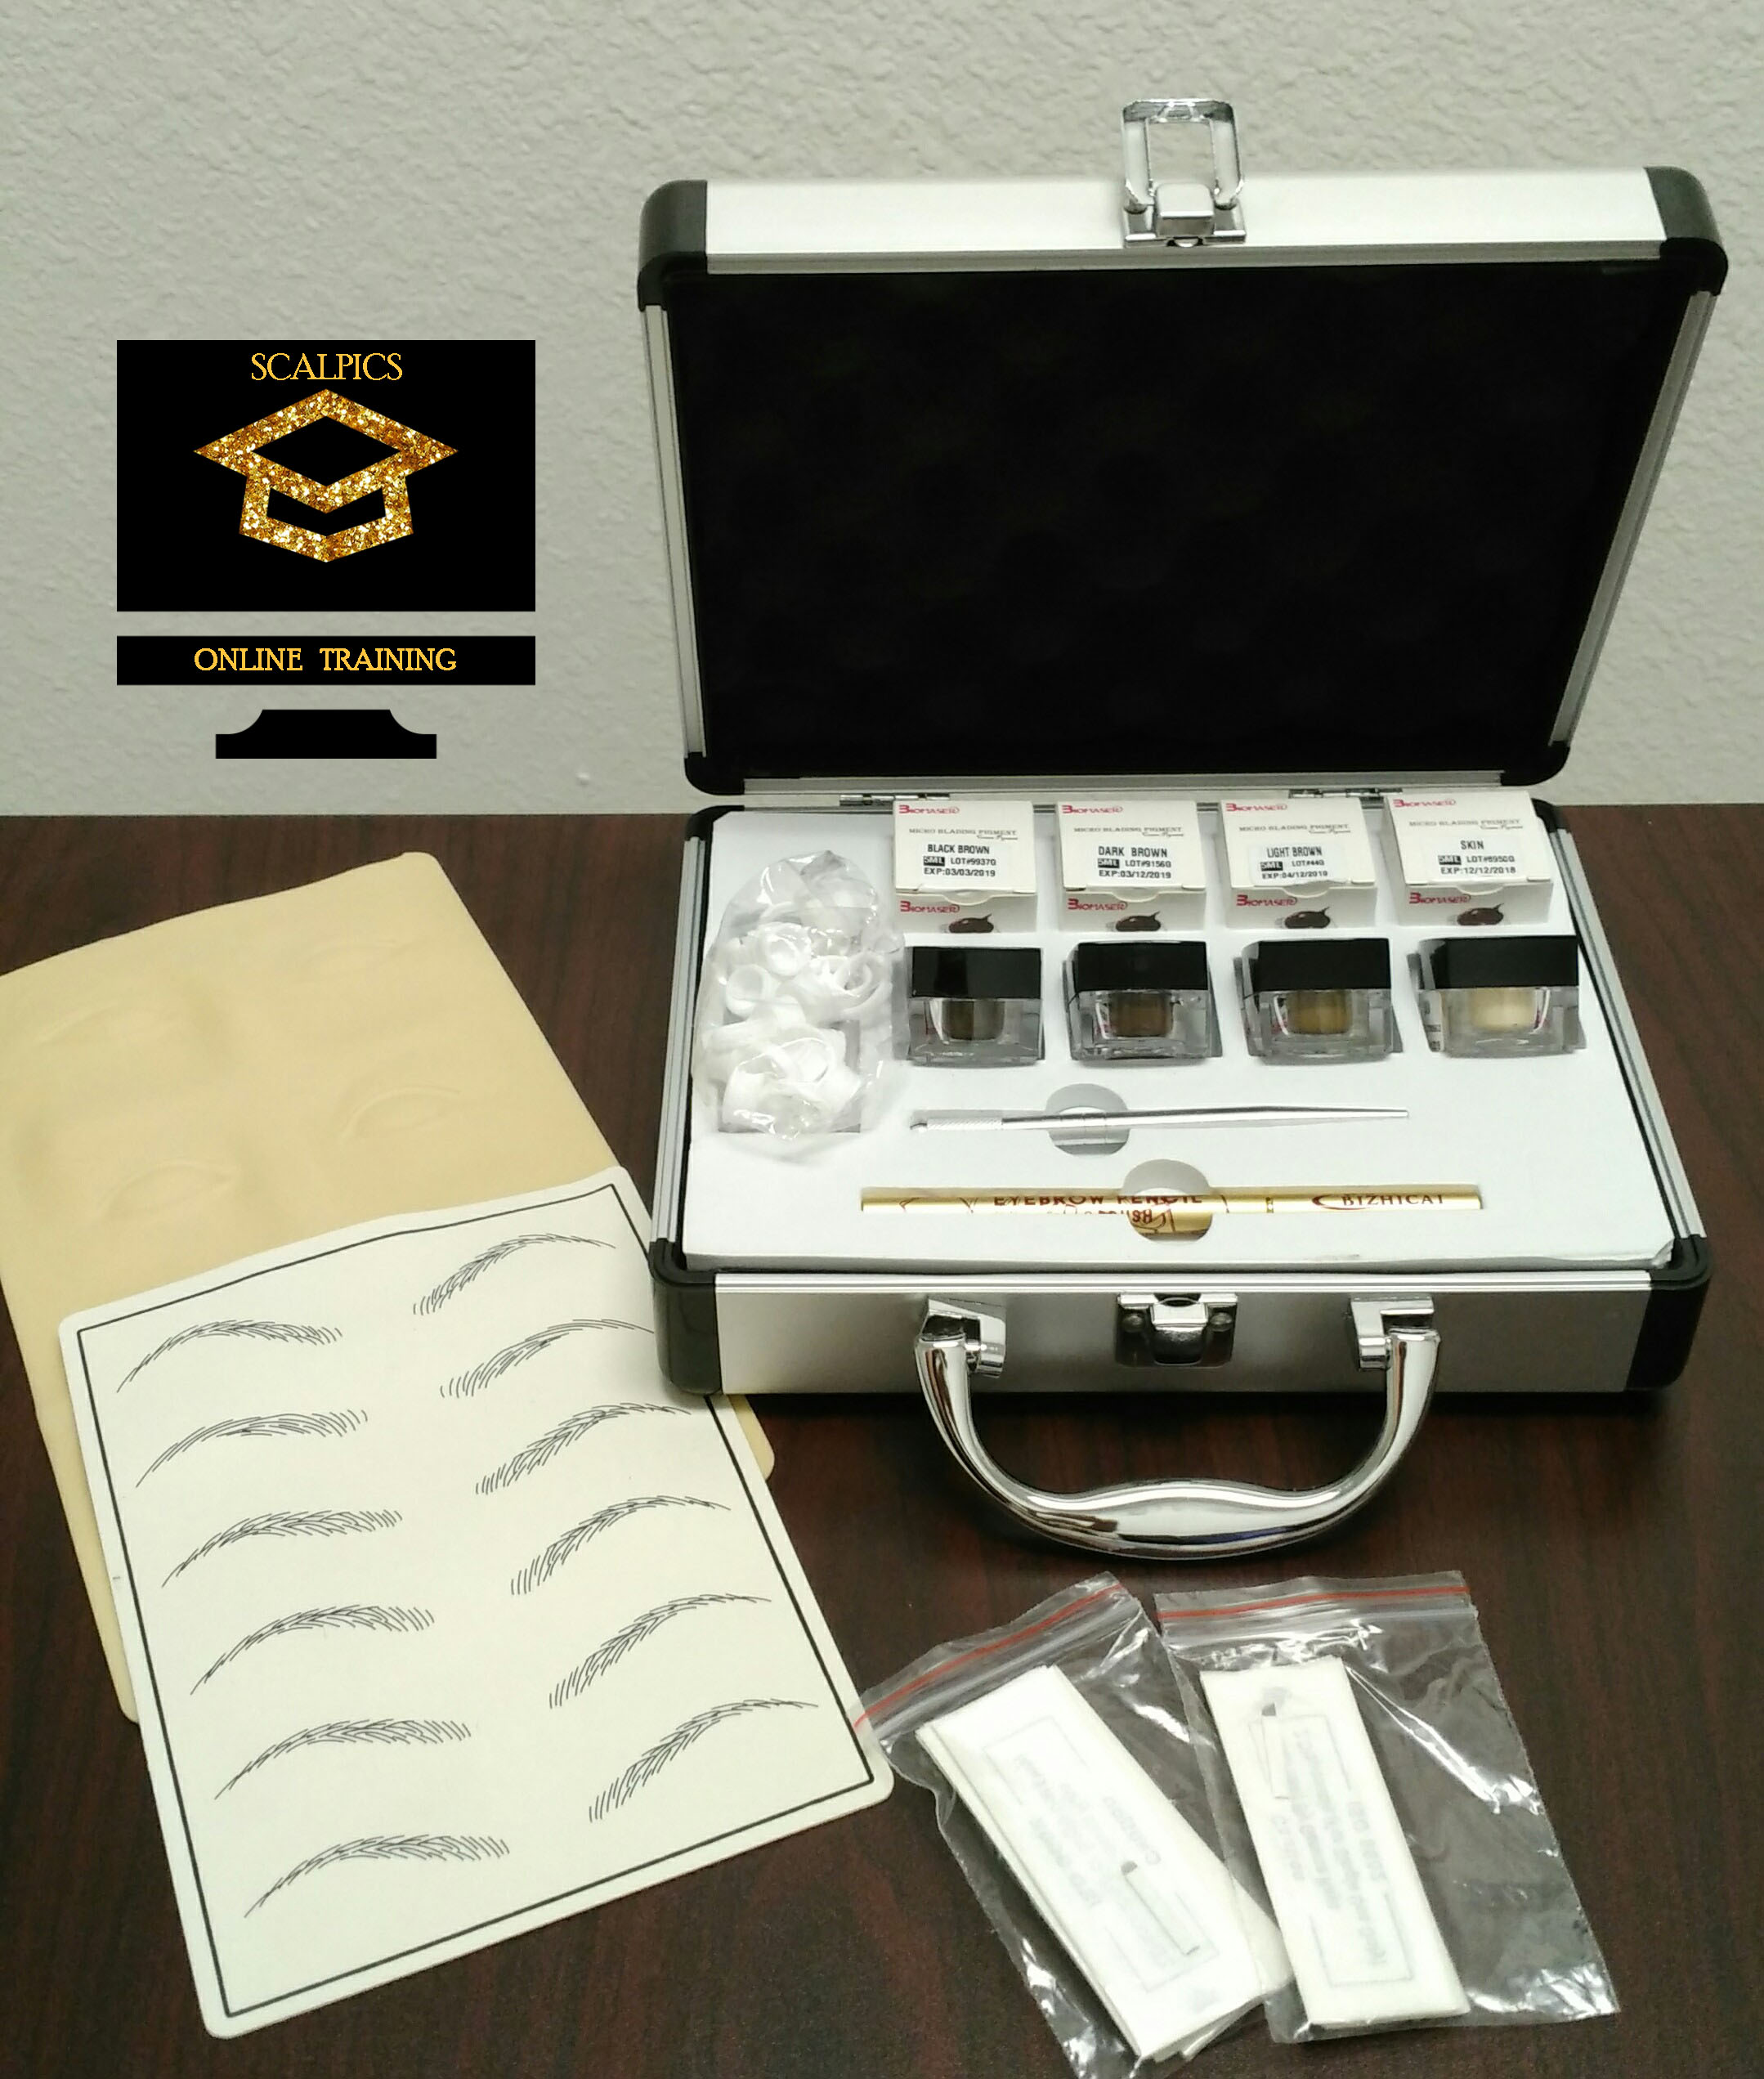 Professional Microblading Training Kit with Free Basic Online Certification